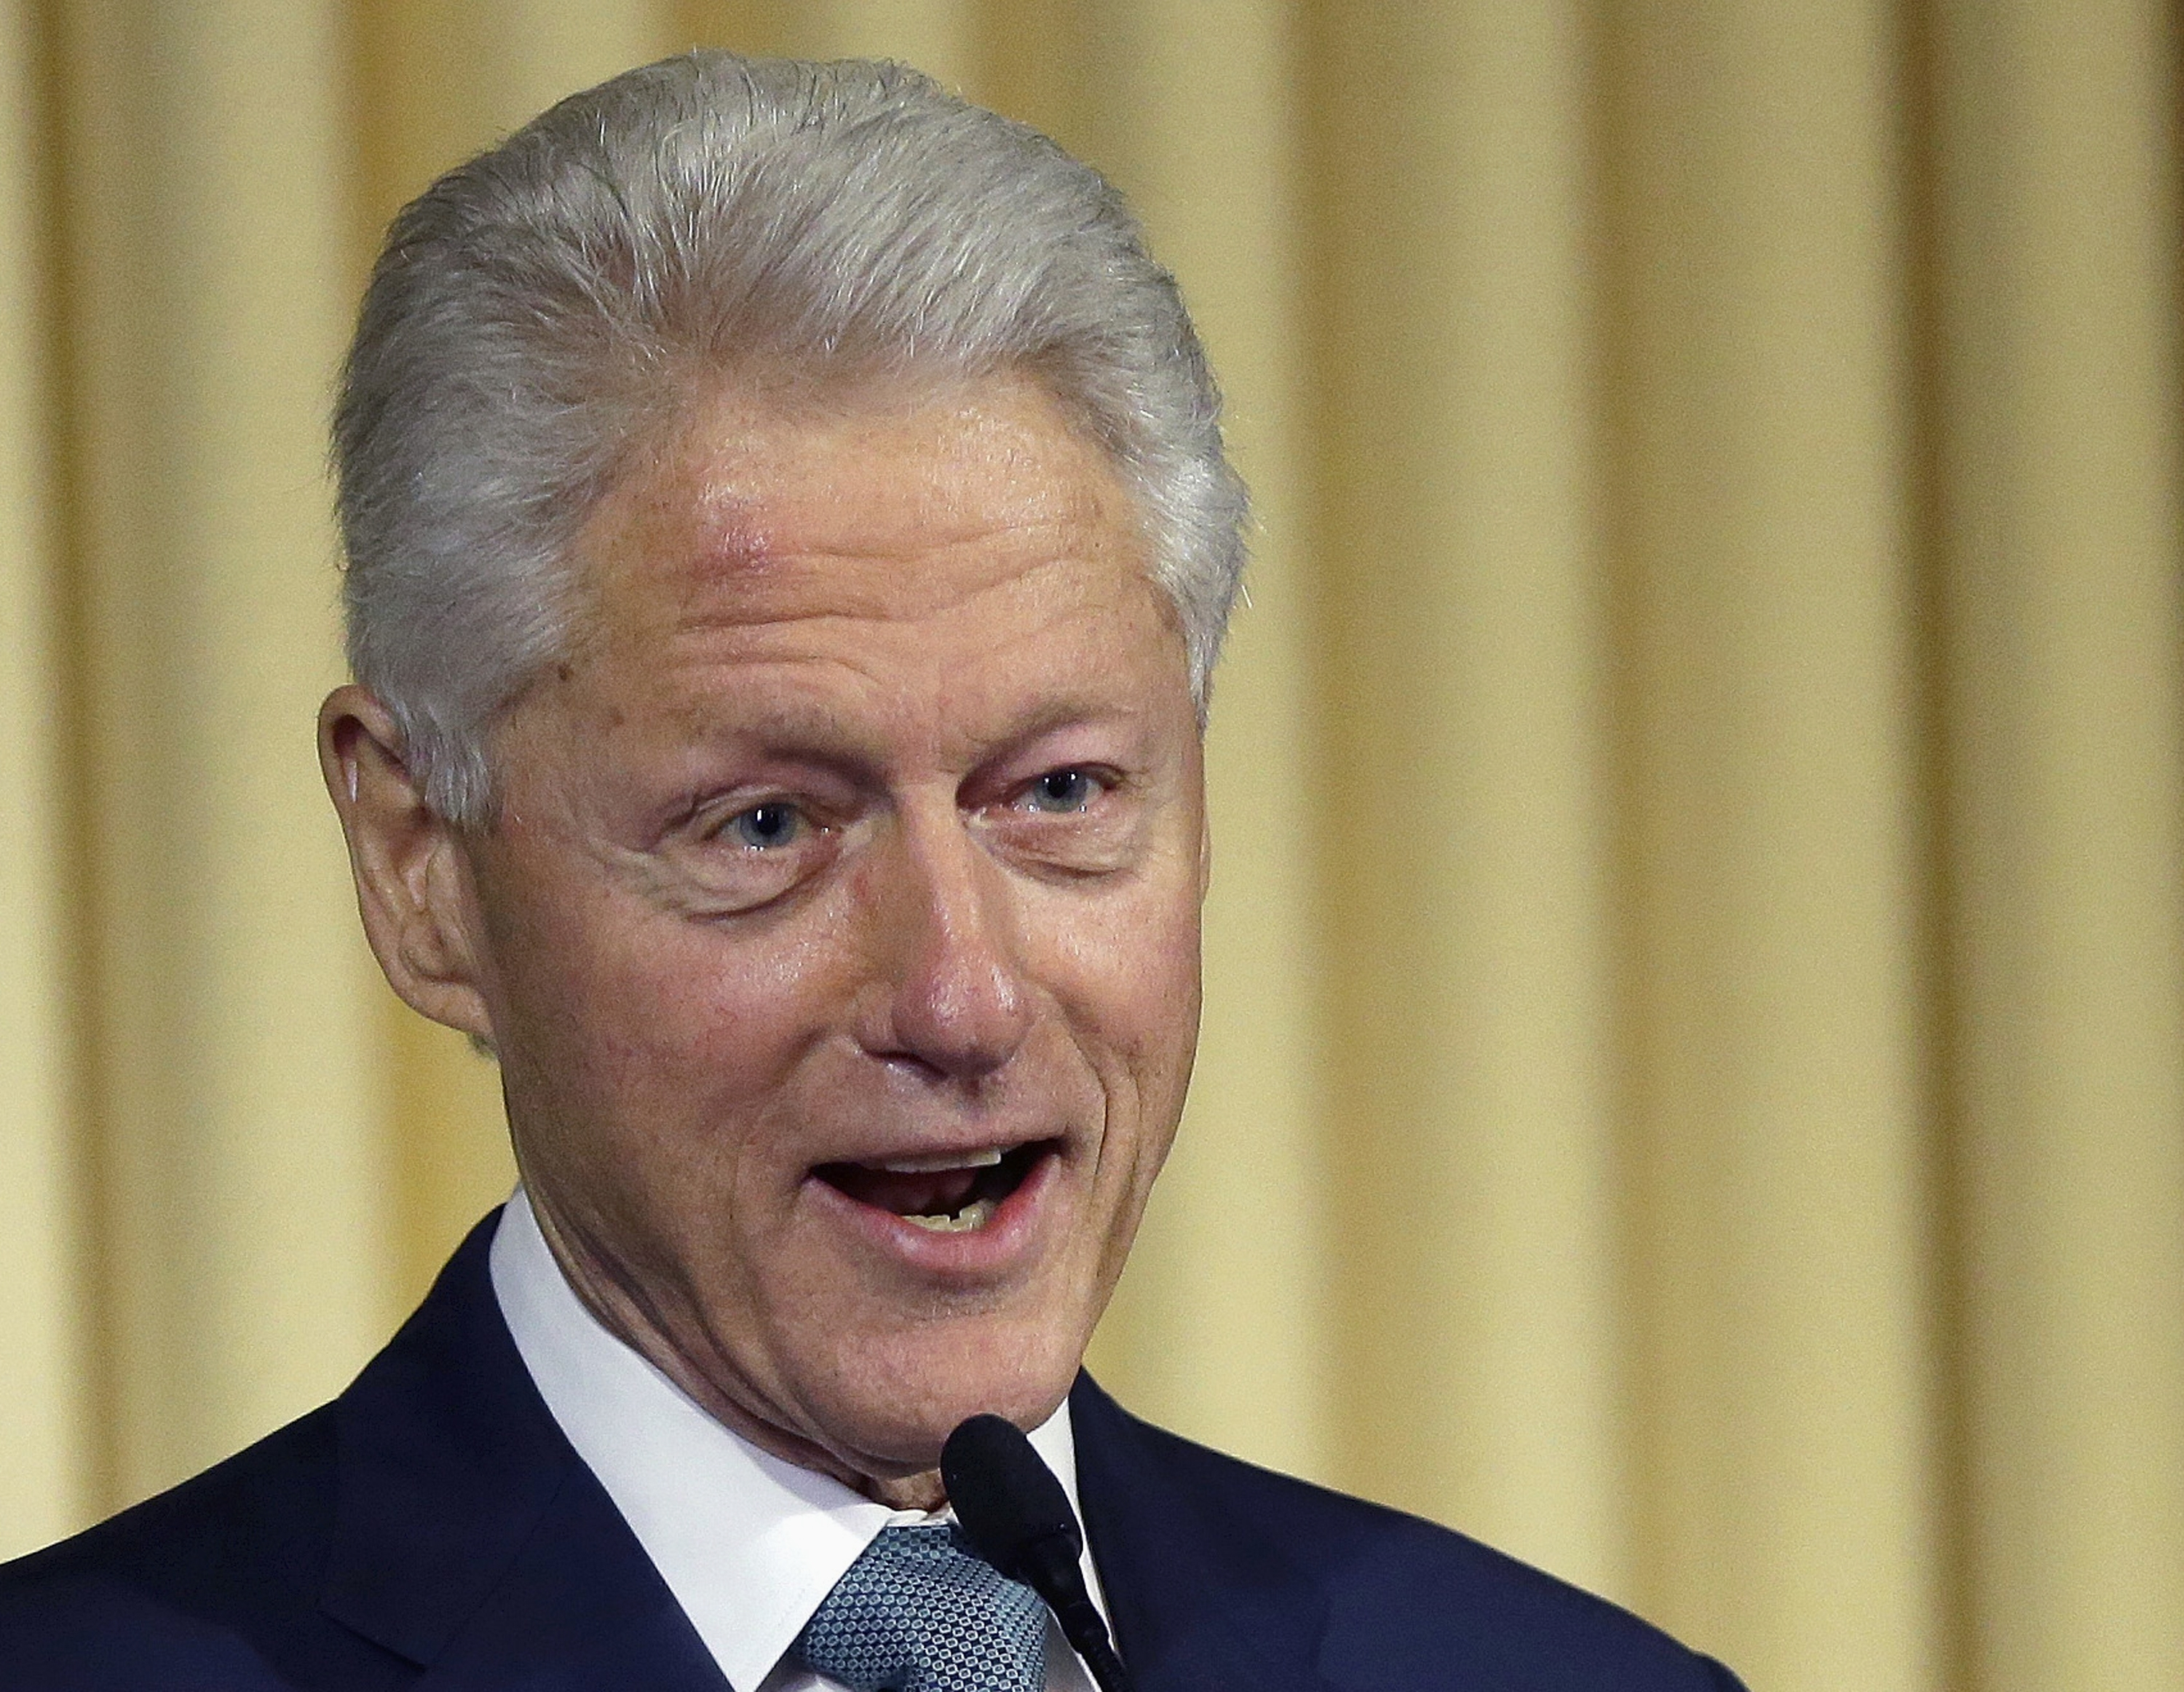 Bill Clinton was known for loving junk food.